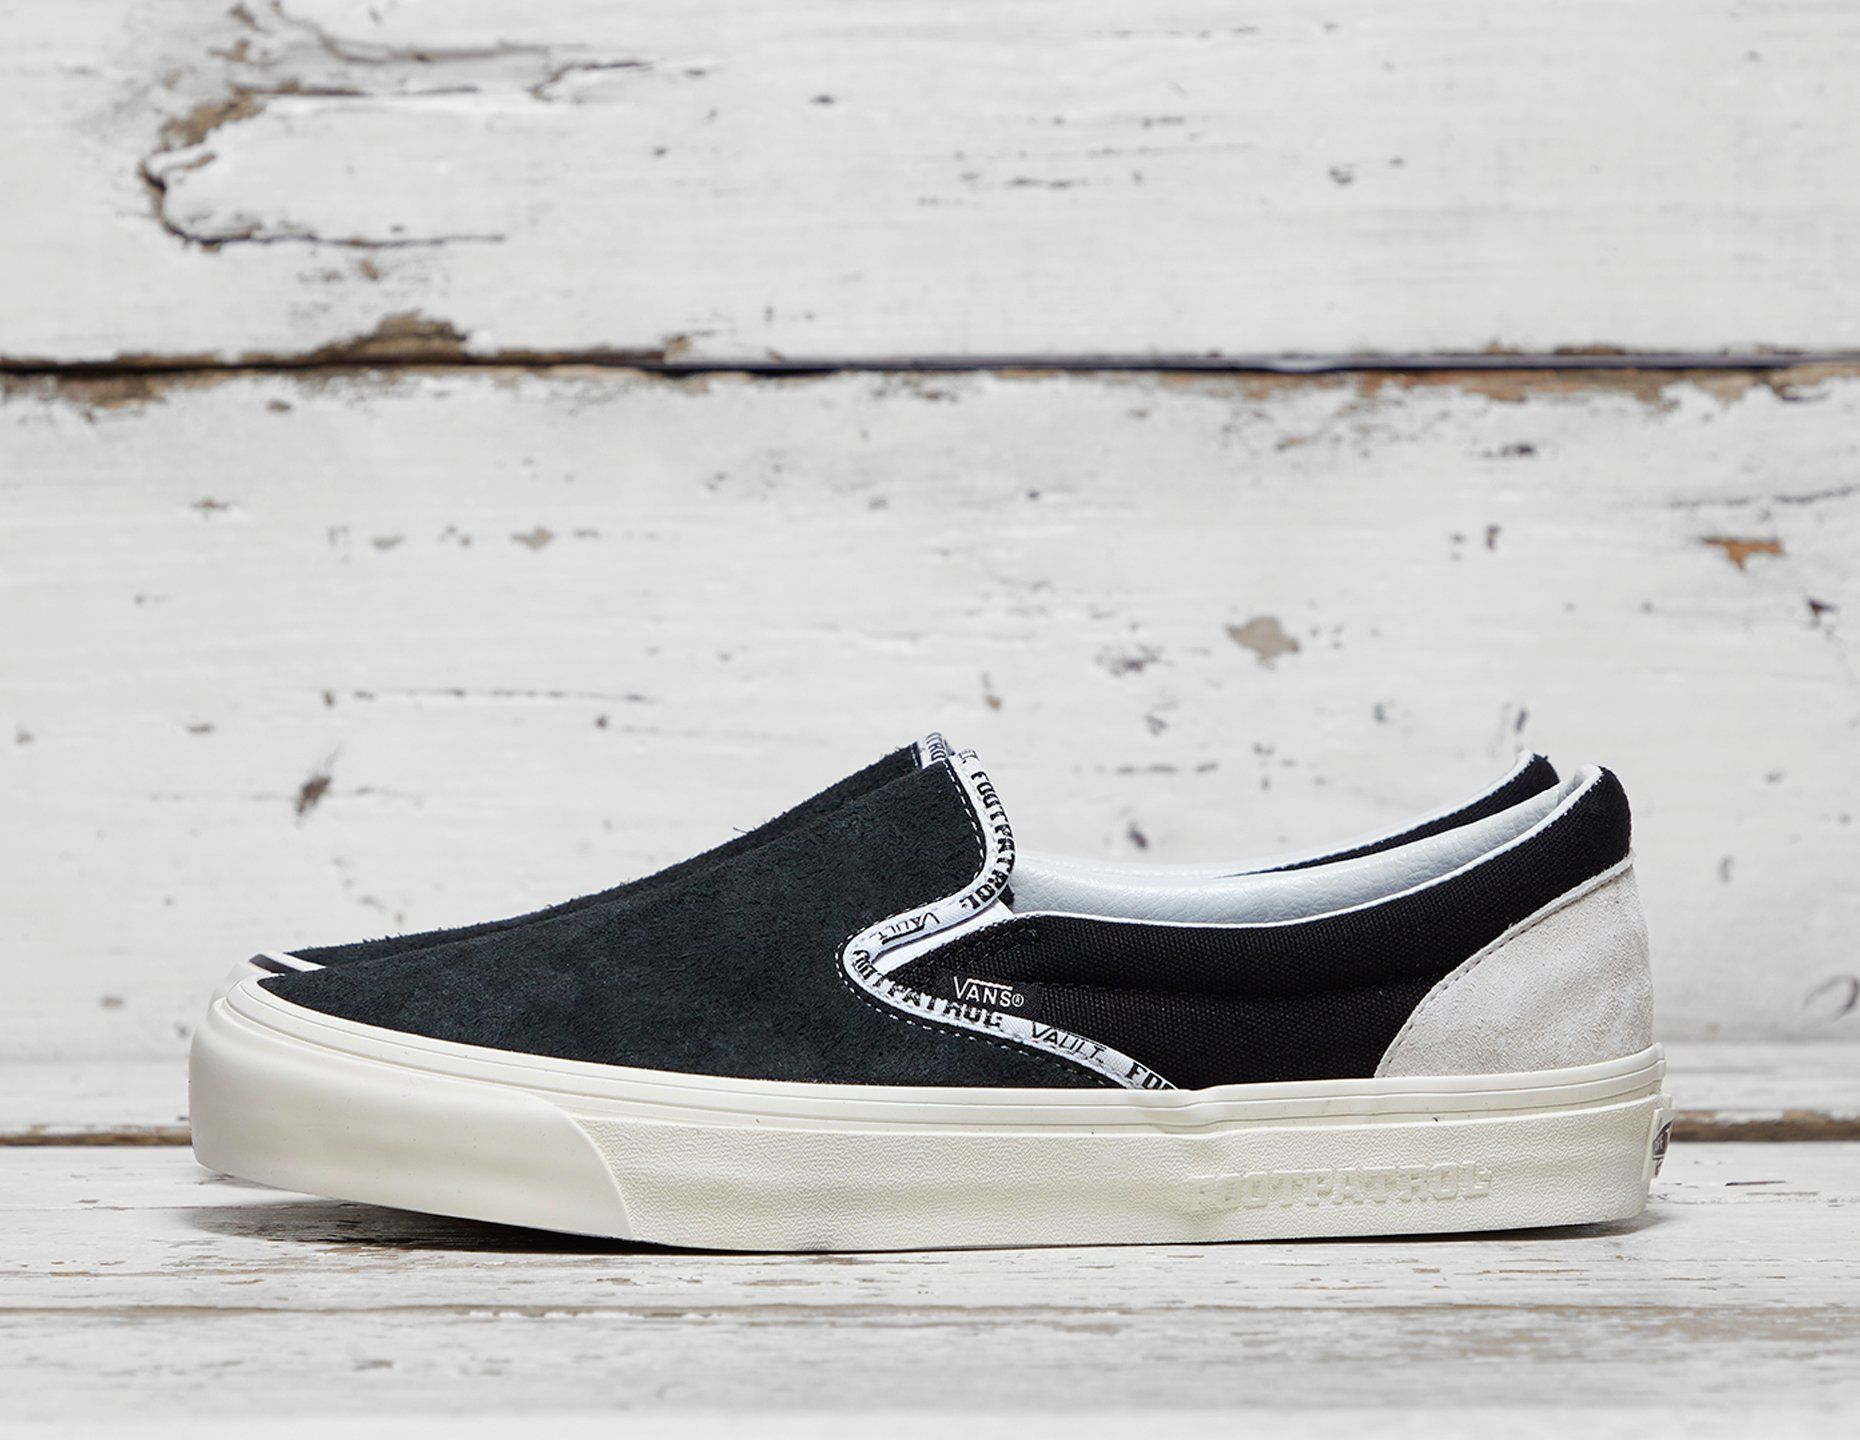 Vault by Vans x Footpatrol Slip-On LX